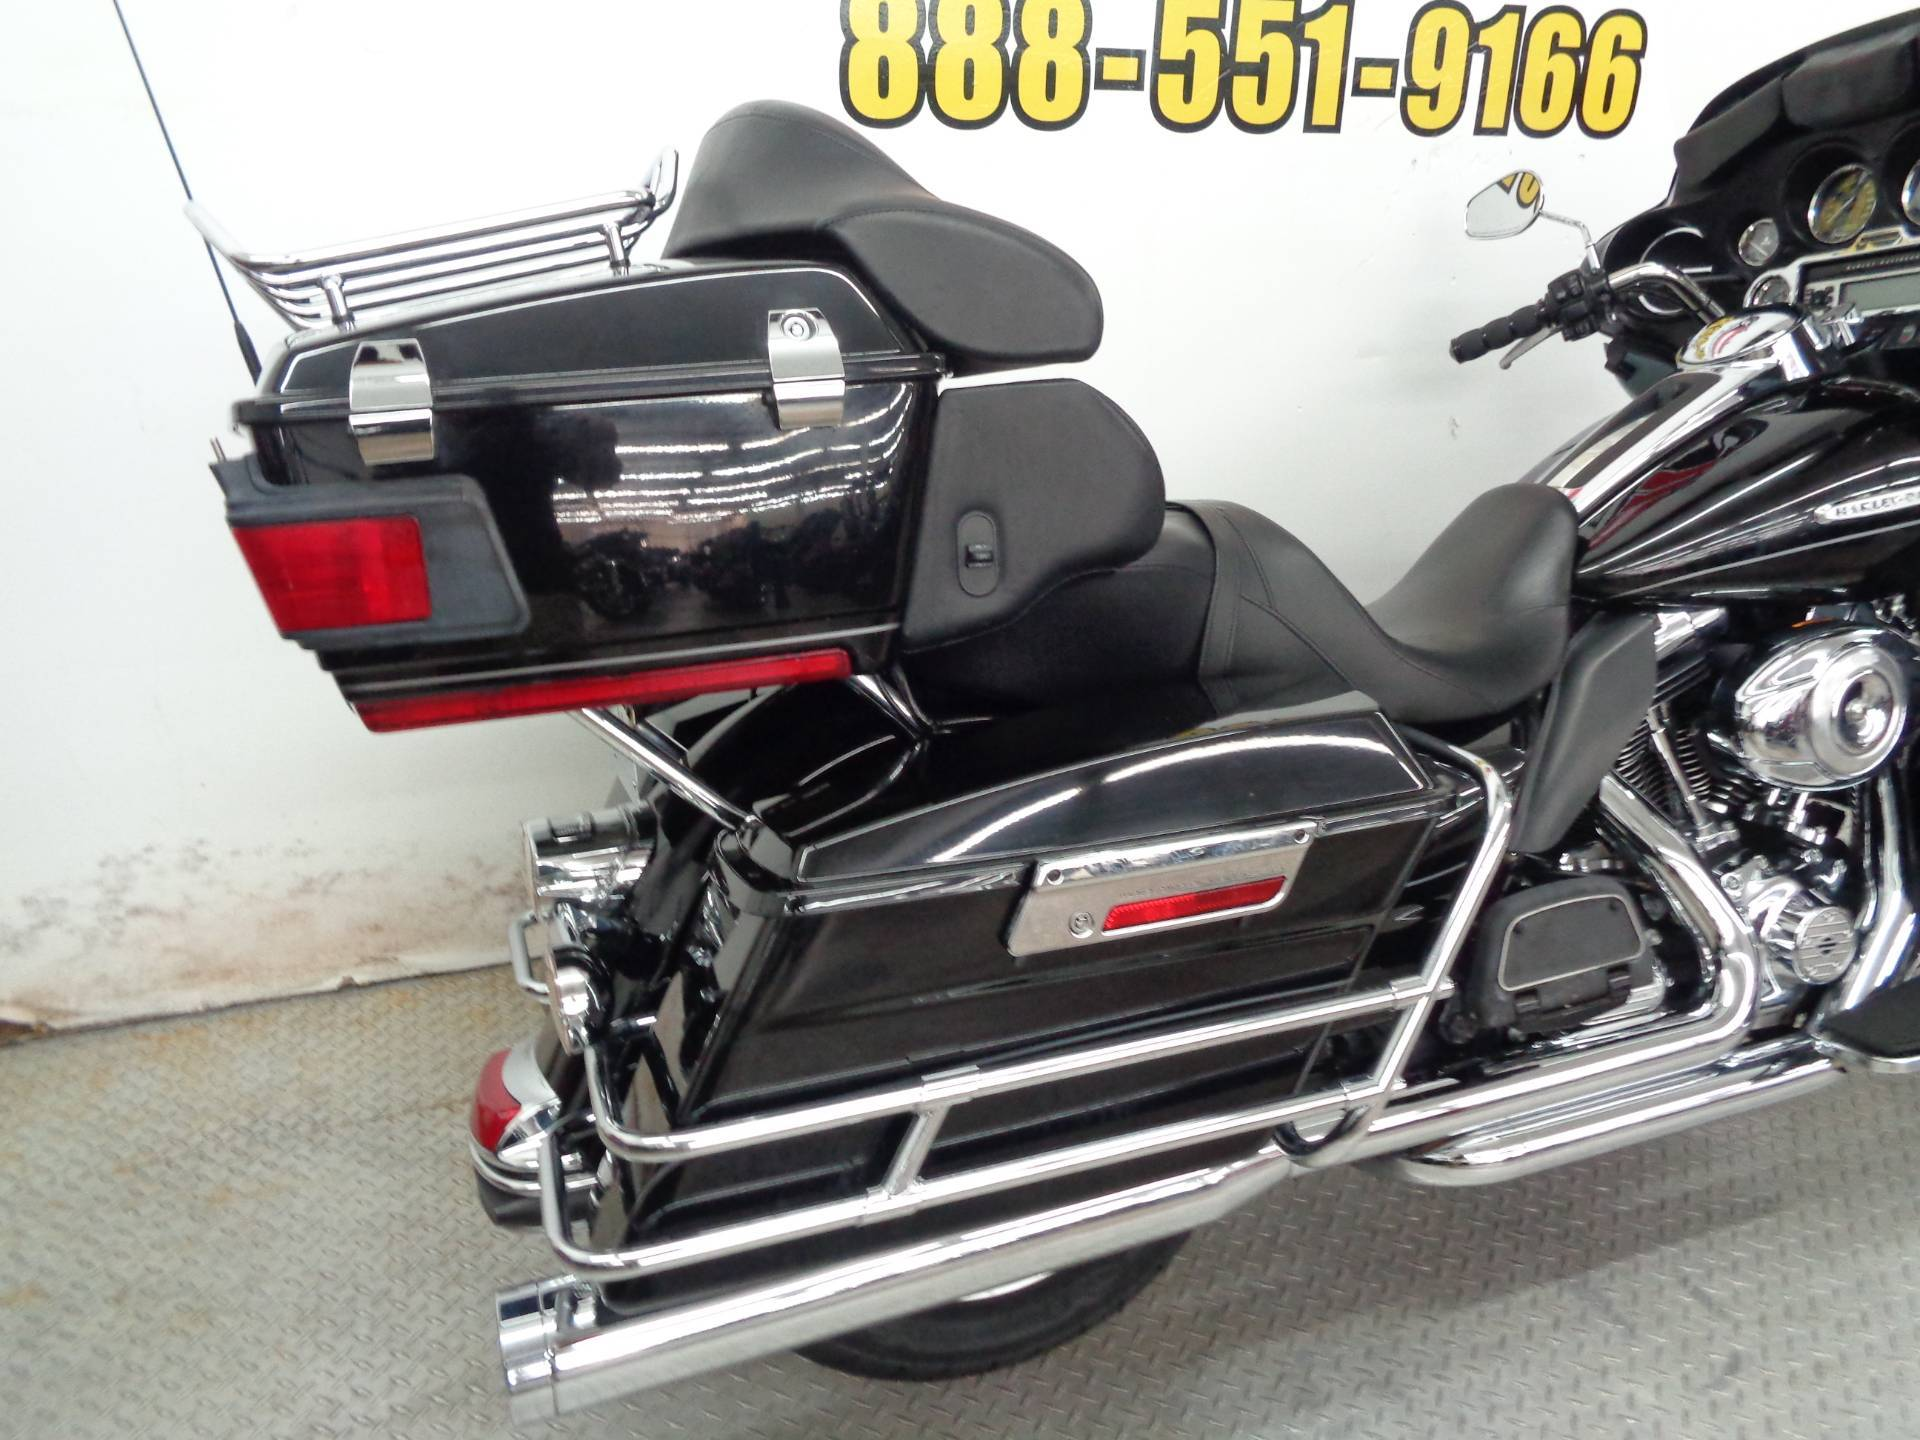 2013 Harley-Davidson Electra Glide® Ultra Limited in Norman, Oklahoma - Photo 9